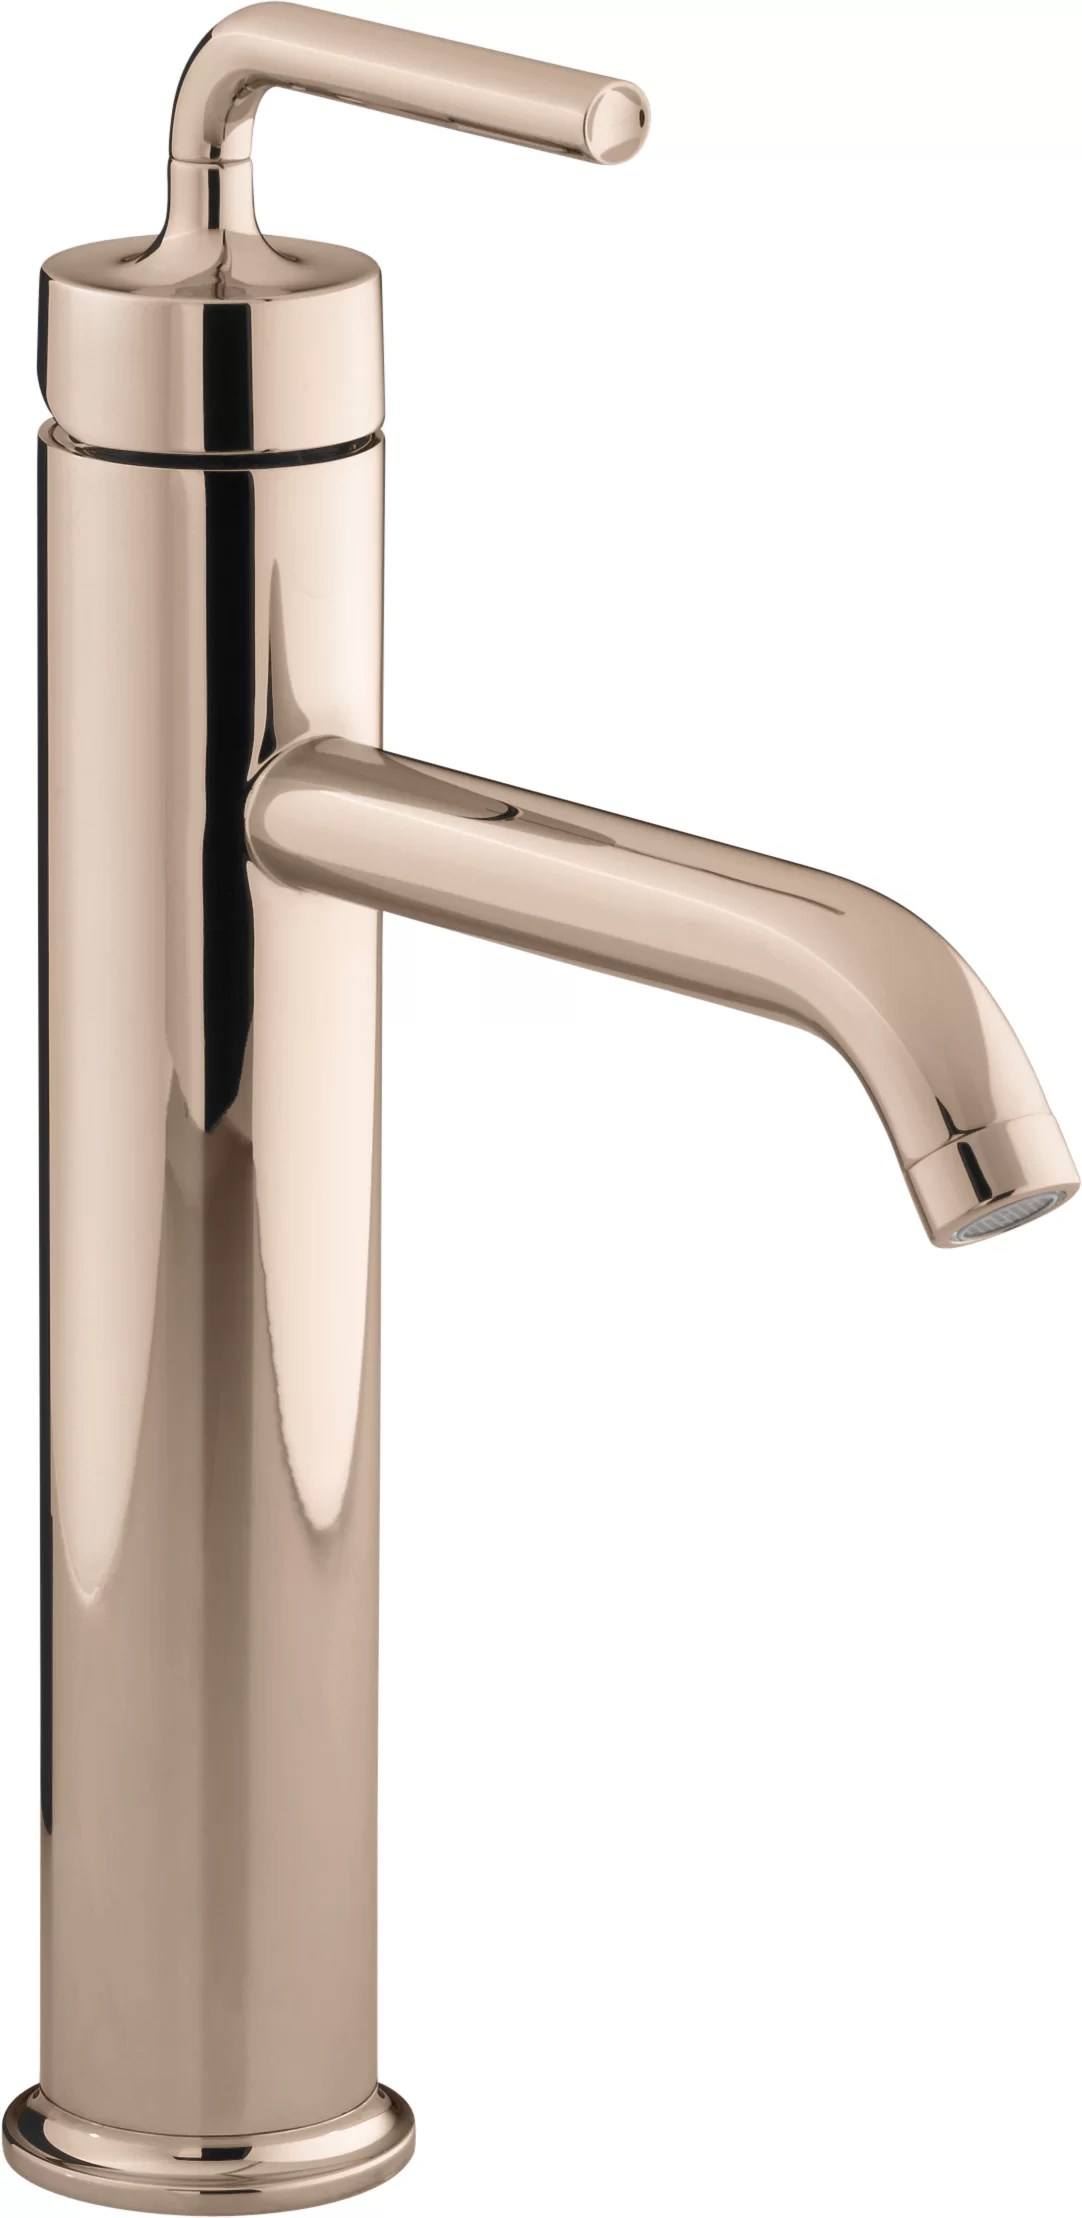 kohler purist tall single handle bathroom sink faucet with straight lever handle